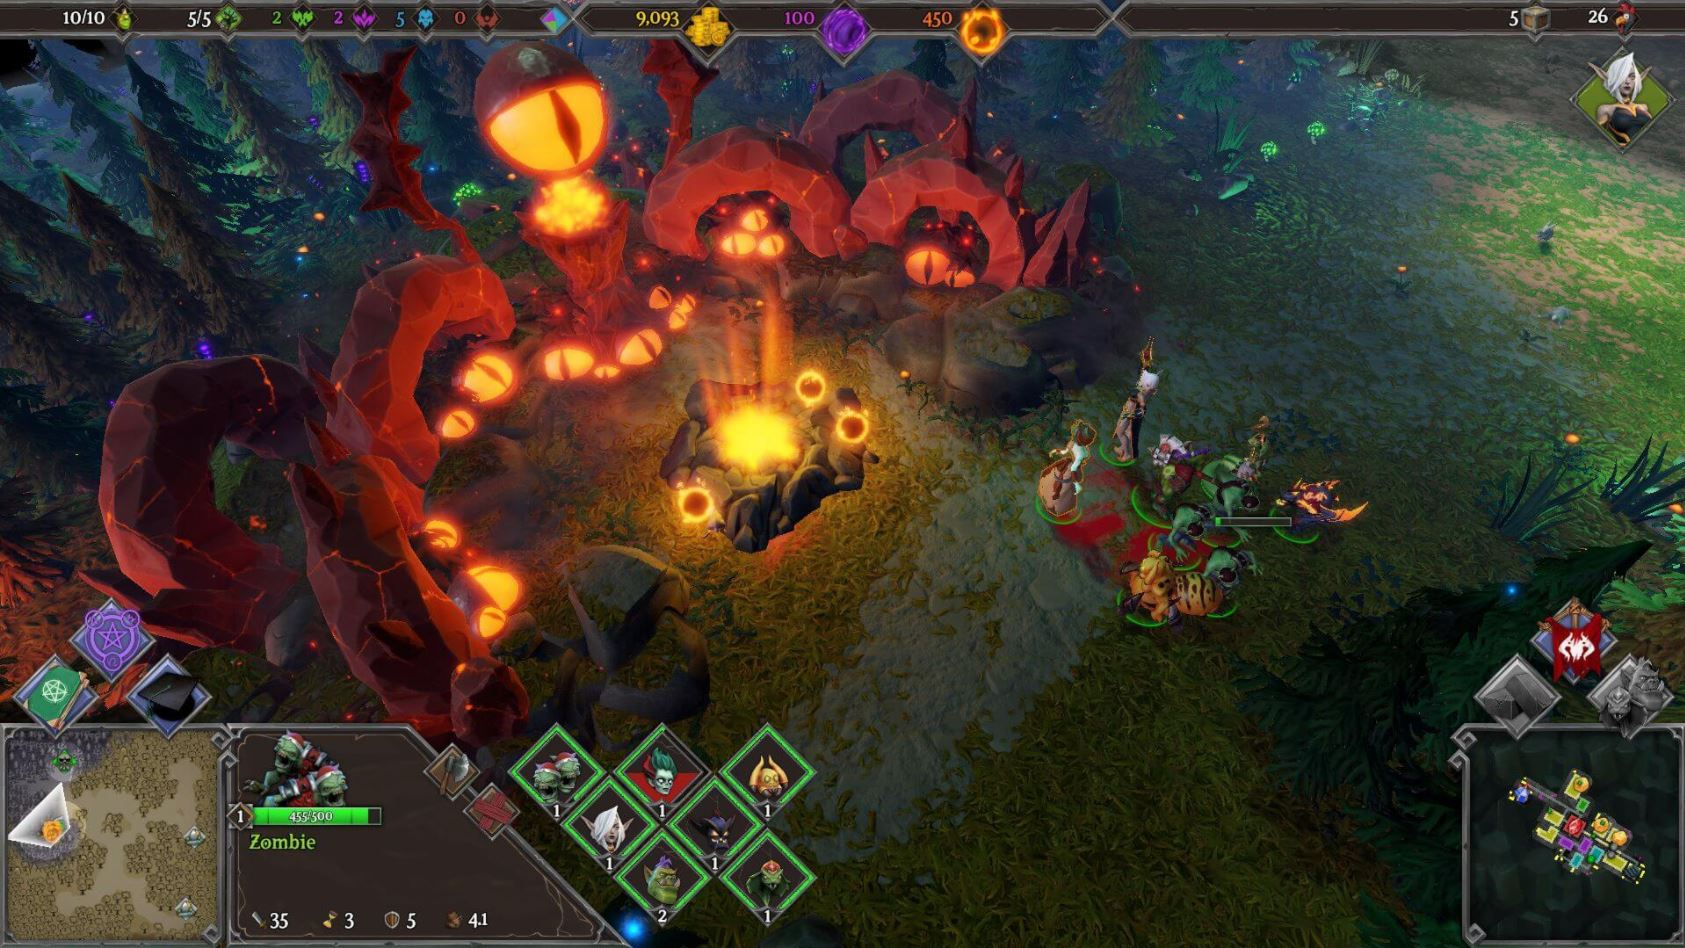 Dungeons 3 sur Steam promo dungeons 2 screen1